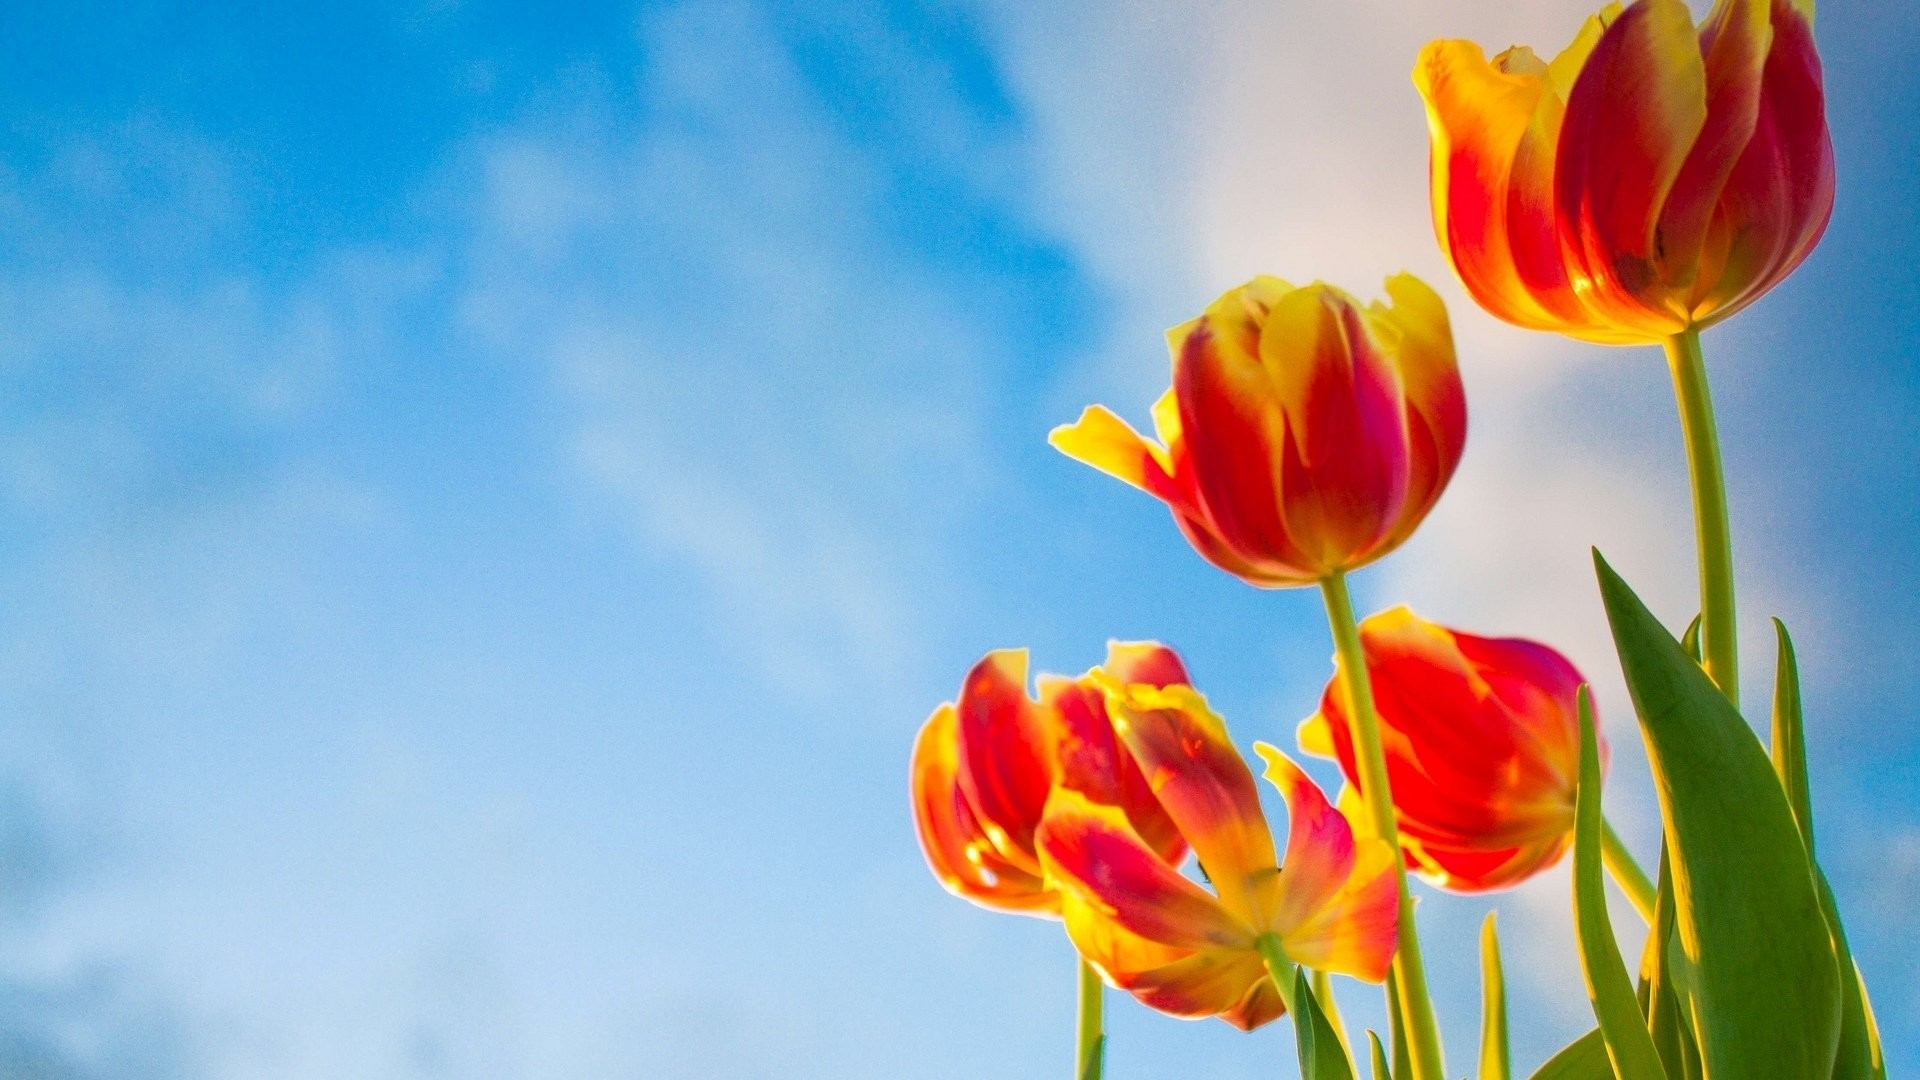 Tulips Background Wallpaper (70+ images)